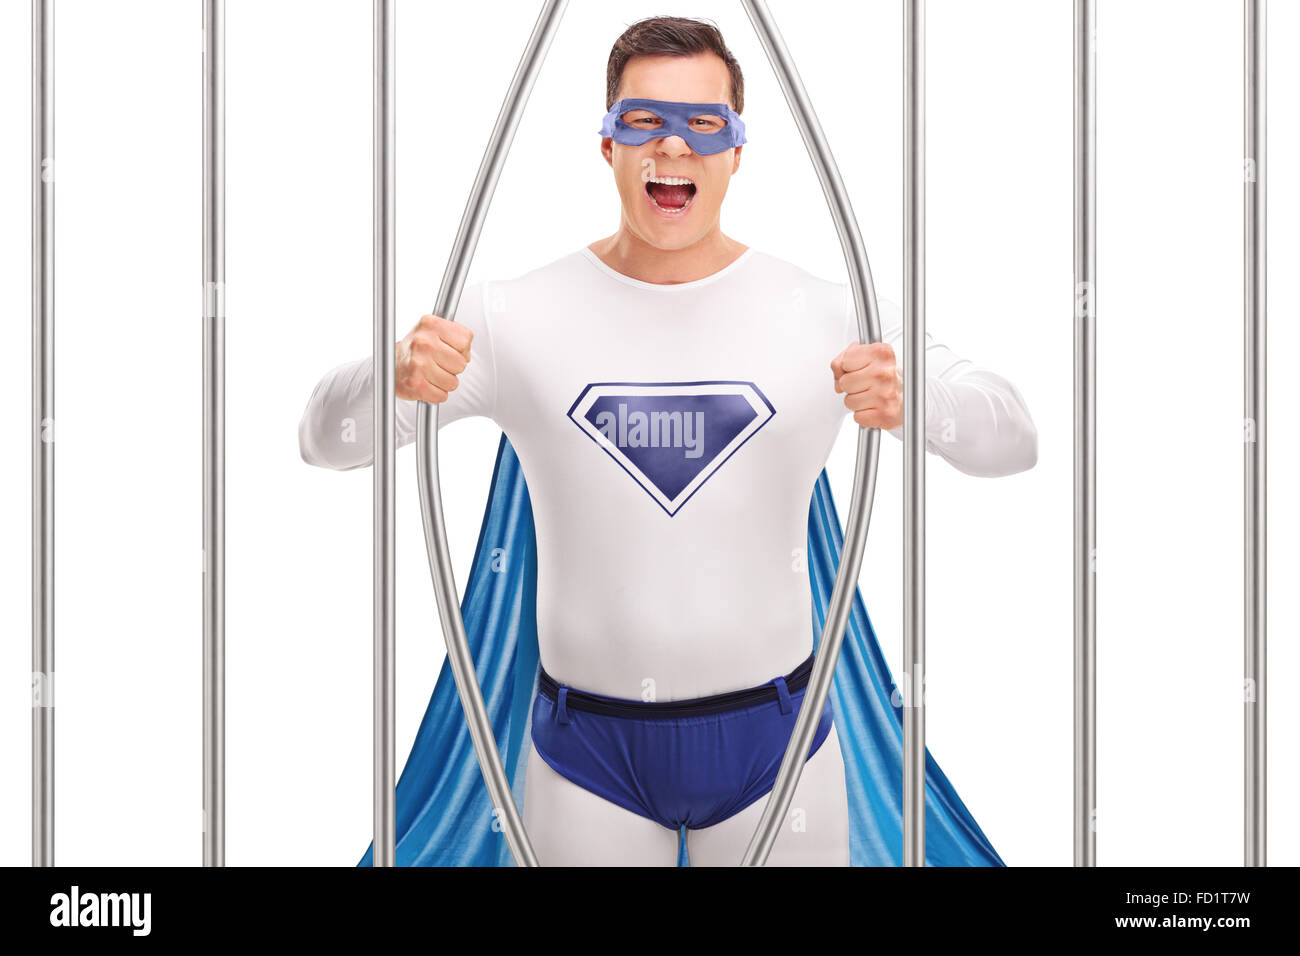 Young man in superhero costume breaking out of prison by bending the bars isolated on white background - Stock Image